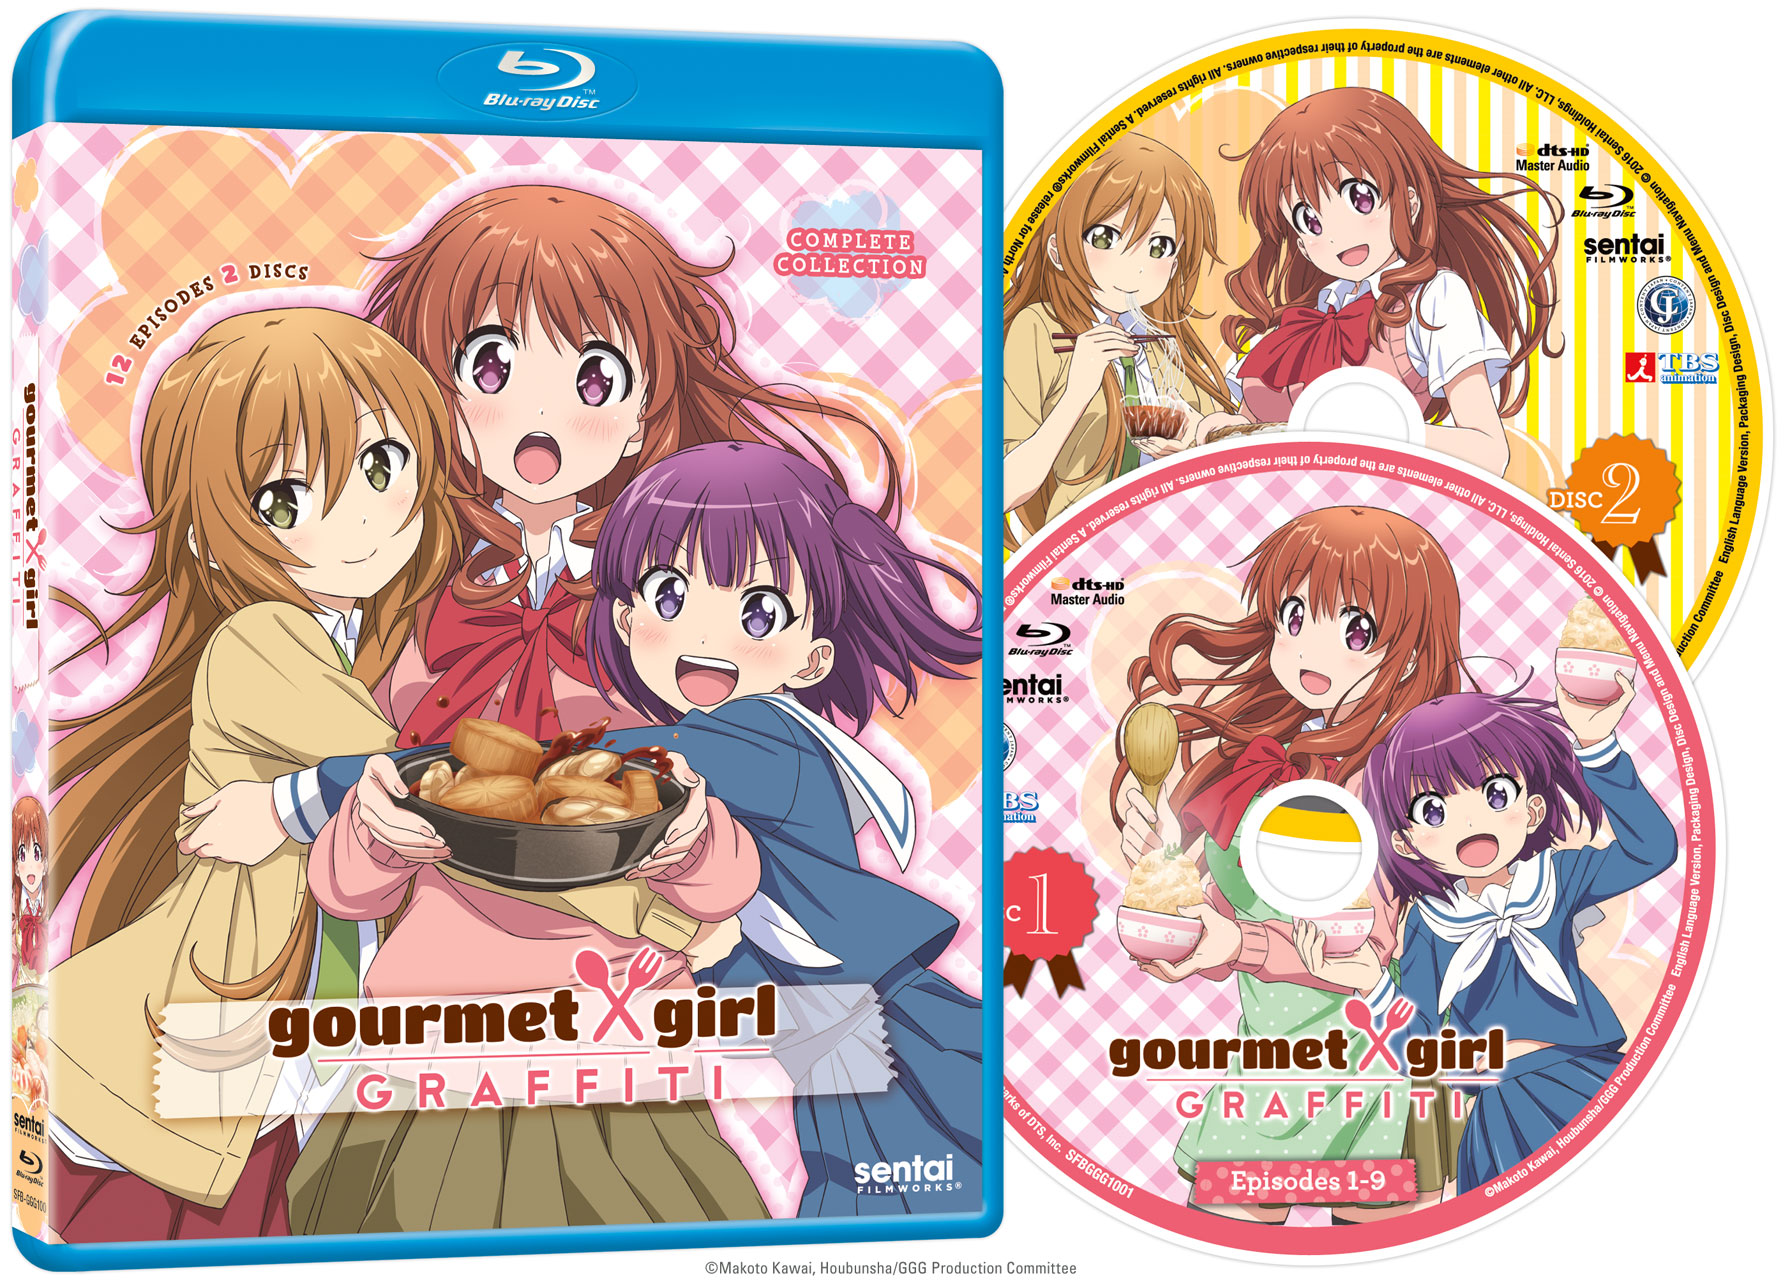 Gourmet Girl Graffiti Blu-ray